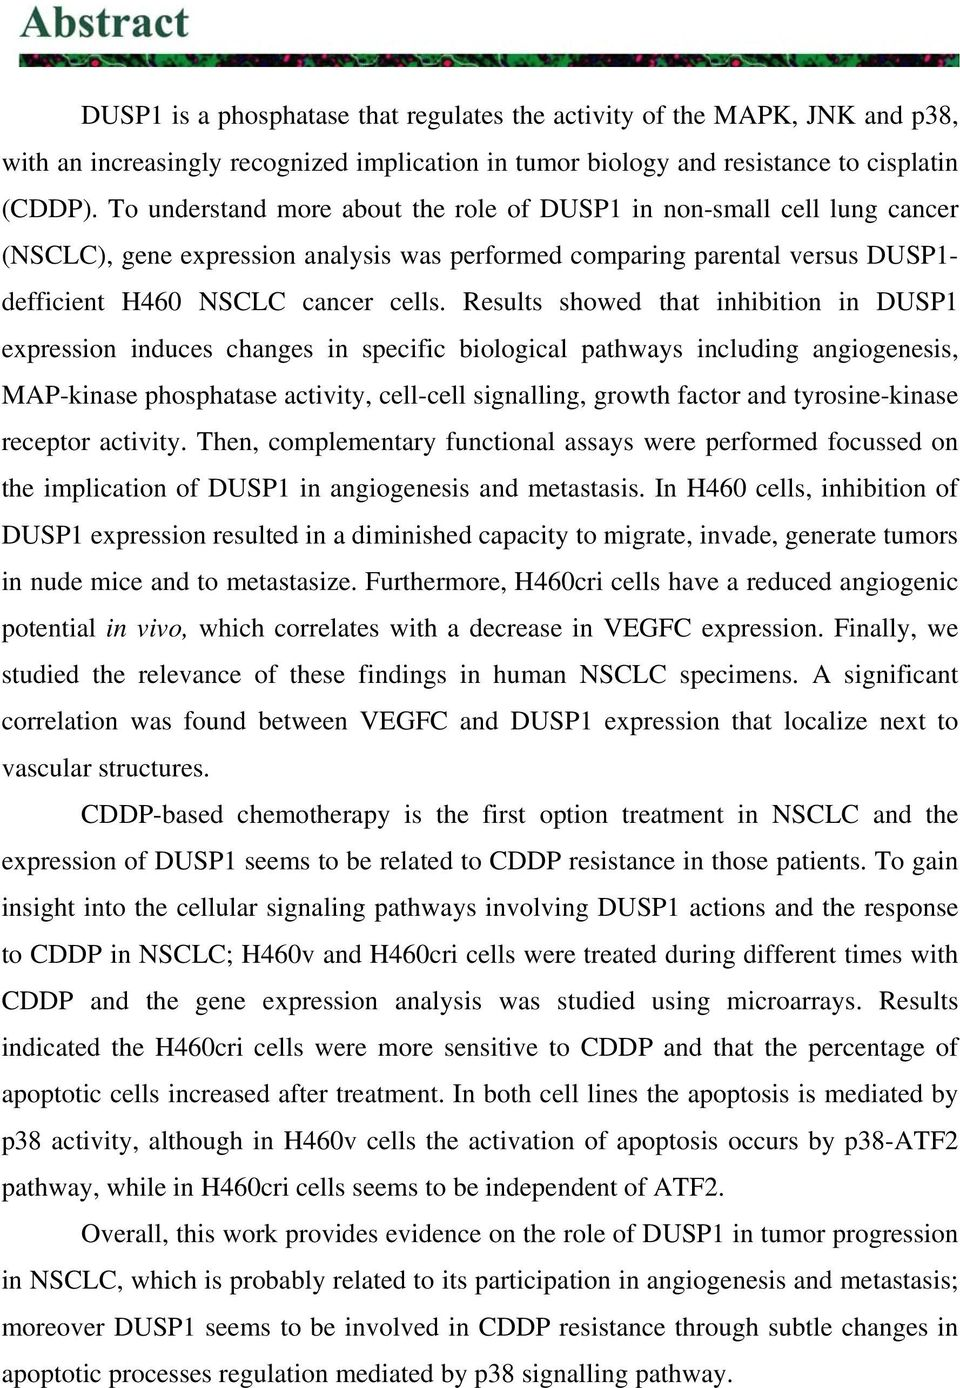 Results showed that inhibition in DUSP1 expression induces changes in specific biological pathways including angiogenesis, MAP-kinase phosphatase activity, cell-cell signalling, growth factor and